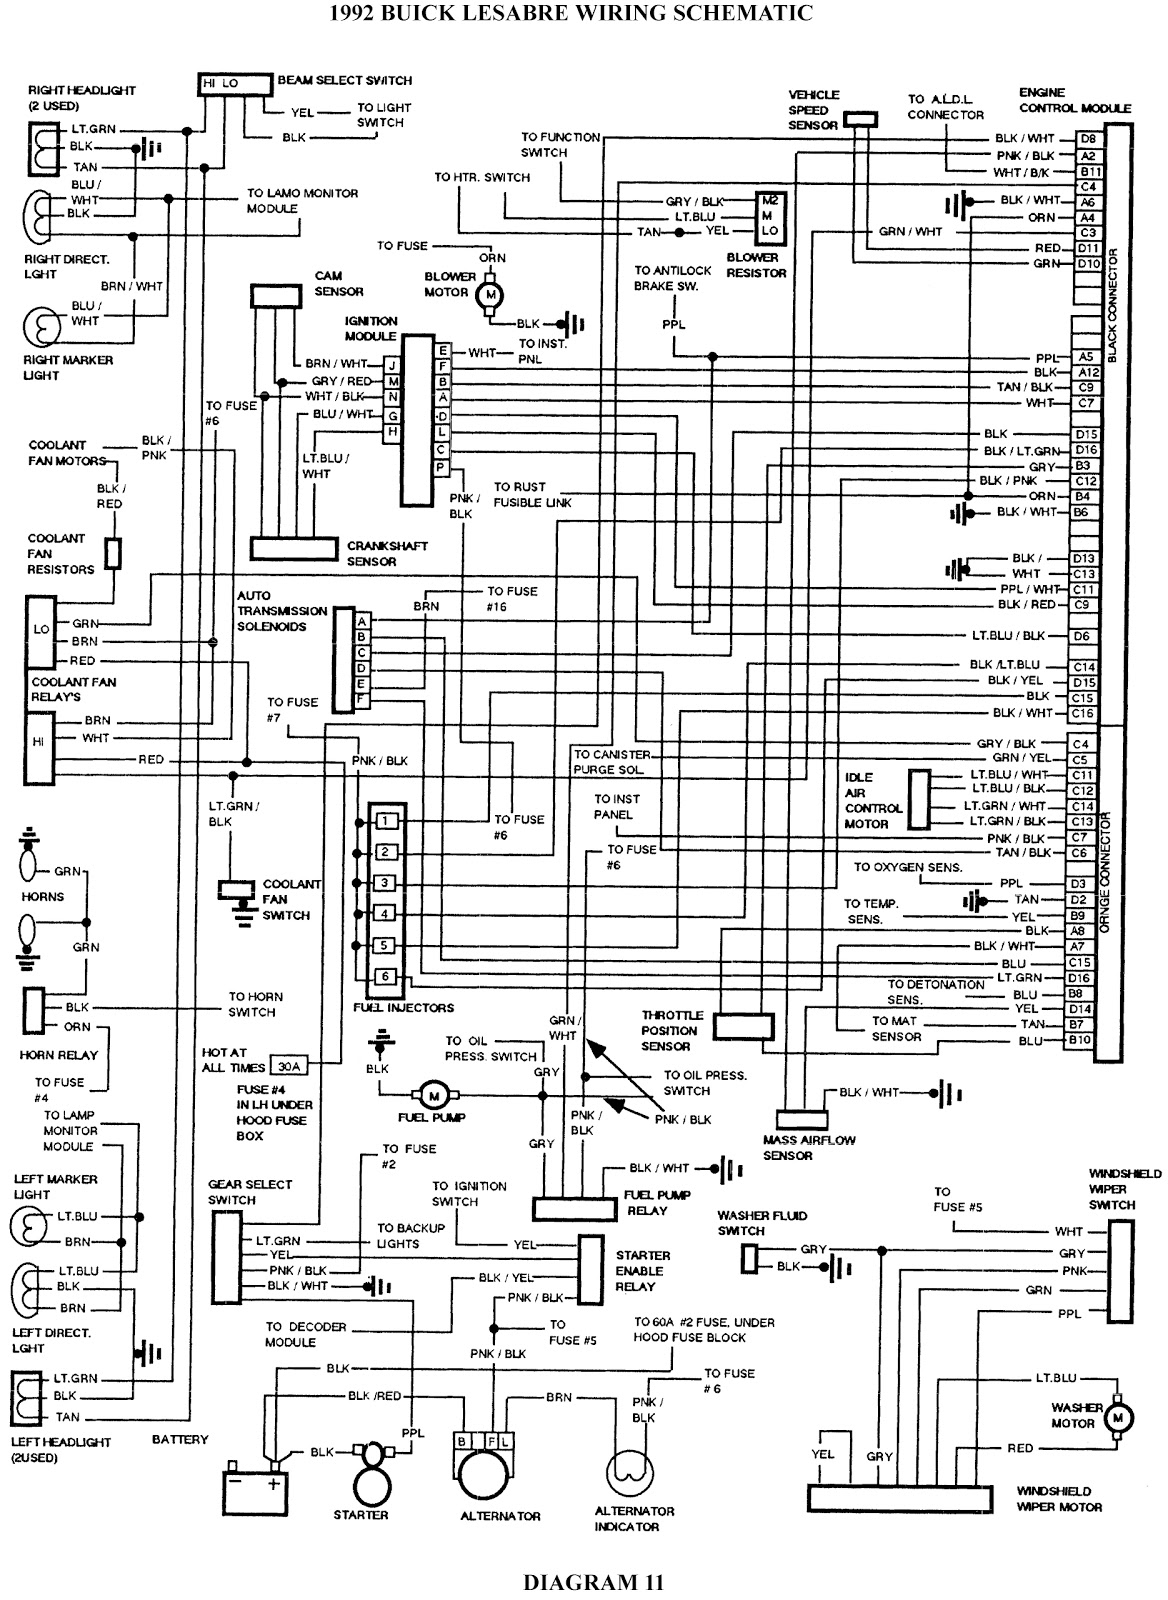 1992 Buick LeSabre Wiring Schematic | Schematic Wiring Diagrams Solutions